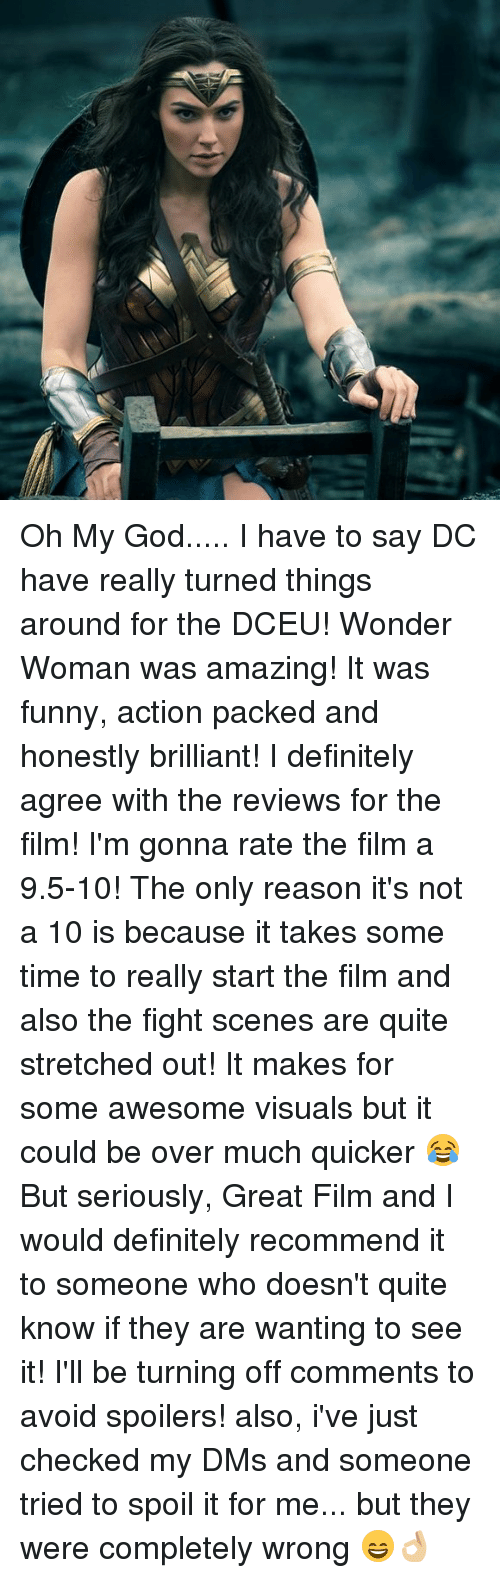 Definitely, Funny, and God: Oh My God..... I have to say DC have really turned things around for the DCEU! Wonder Woman was amazing! It was funny, action packed and honestly brilliant! I definitely agree with the reviews for the film! I'm gonna rate the film a 9.5-10! The only reason it's not a 10 is because it takes some time to really start the film and also the fight scenes are quite stretched out! It makes for some awesome visuals but it could be over much quicker 😂 But seriously, Great Film and I would definitely recommend it to someone who doesn't quite know if they are wanting to see it! I'll be turning off comments to avoid spoilers! also, i've just checked my DMs and someone tried to spoil it for me... but they were completely wrong 😄👌🏼